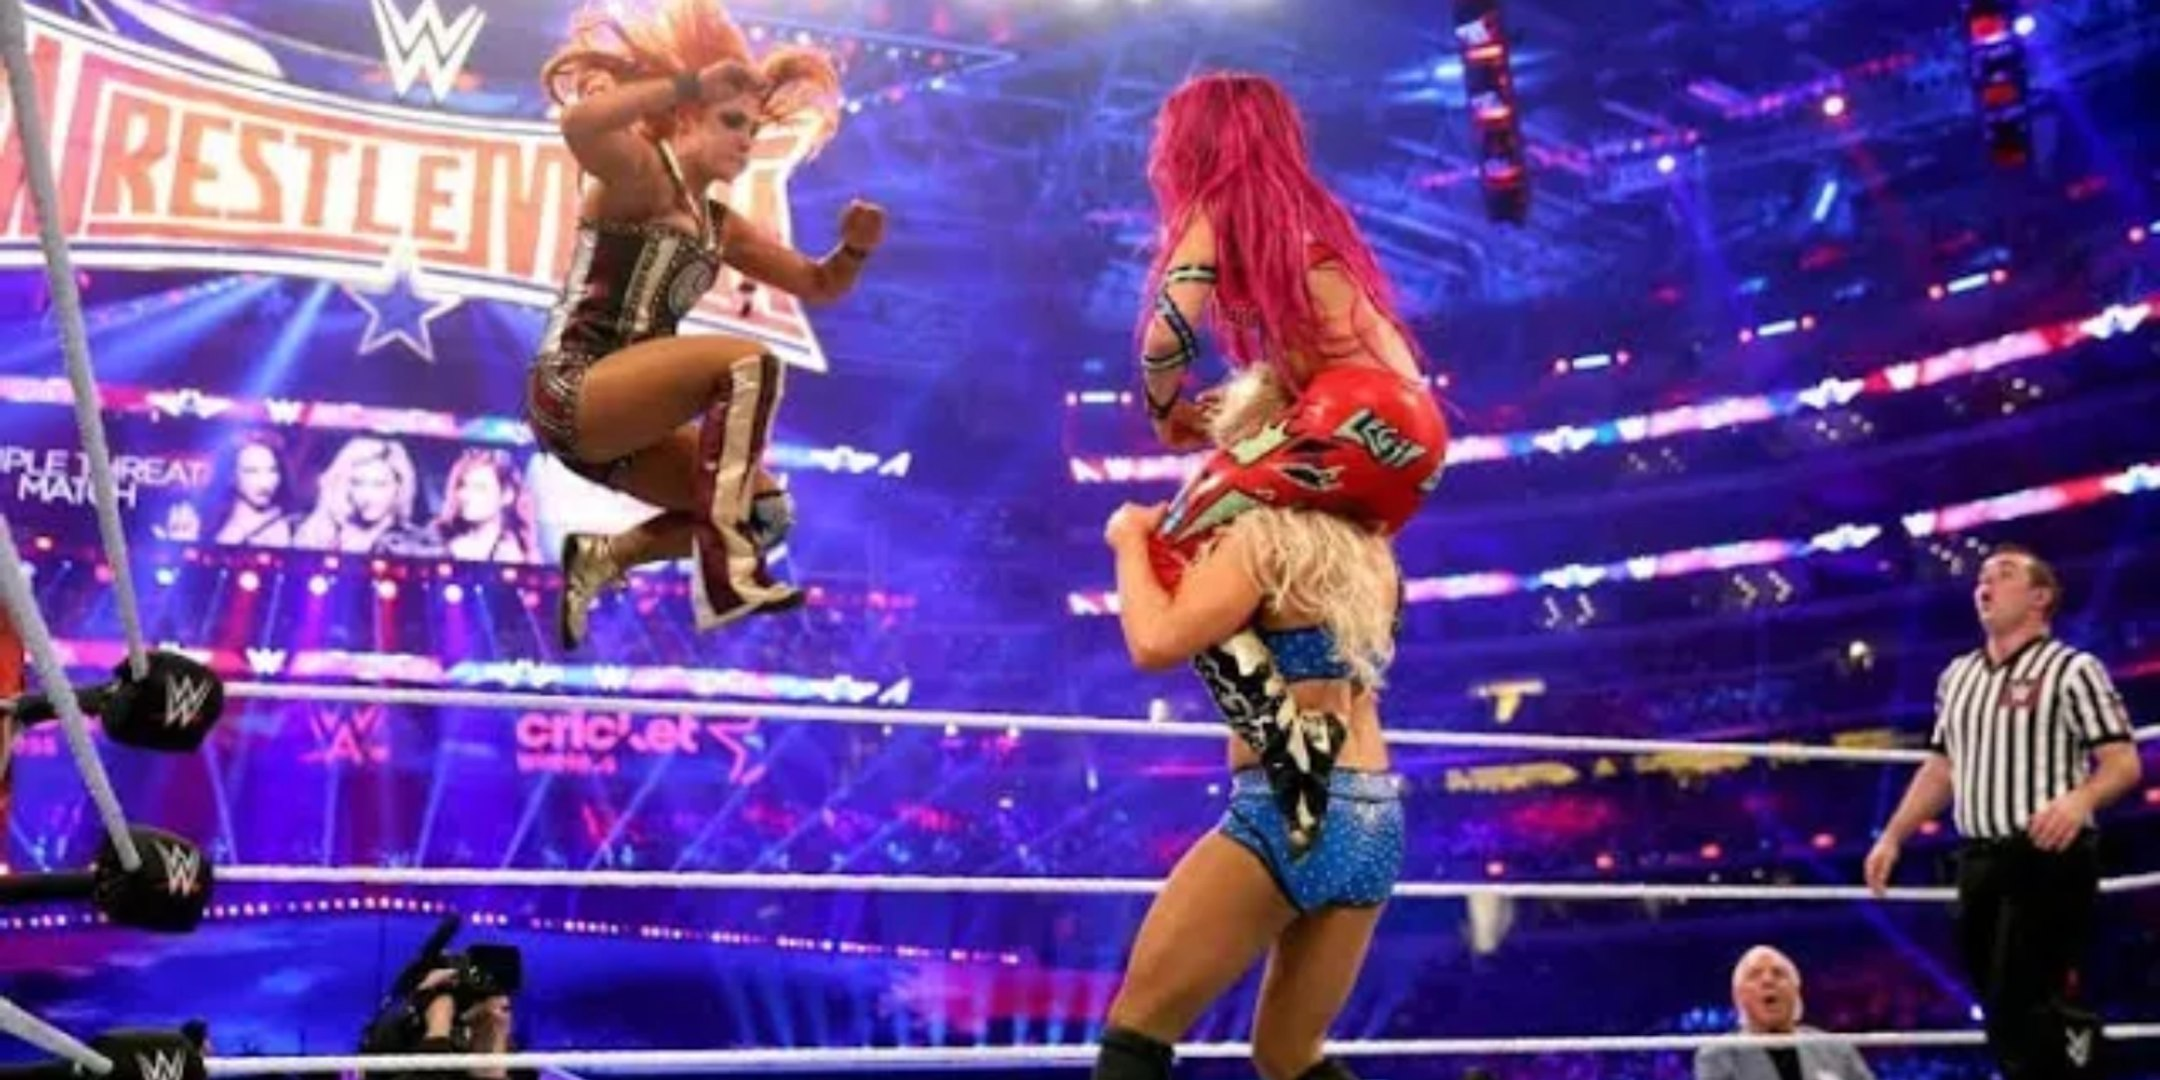 Sasha Banks vs Charlotte Flair vs Becky Lynch WrestleMania 32 ...